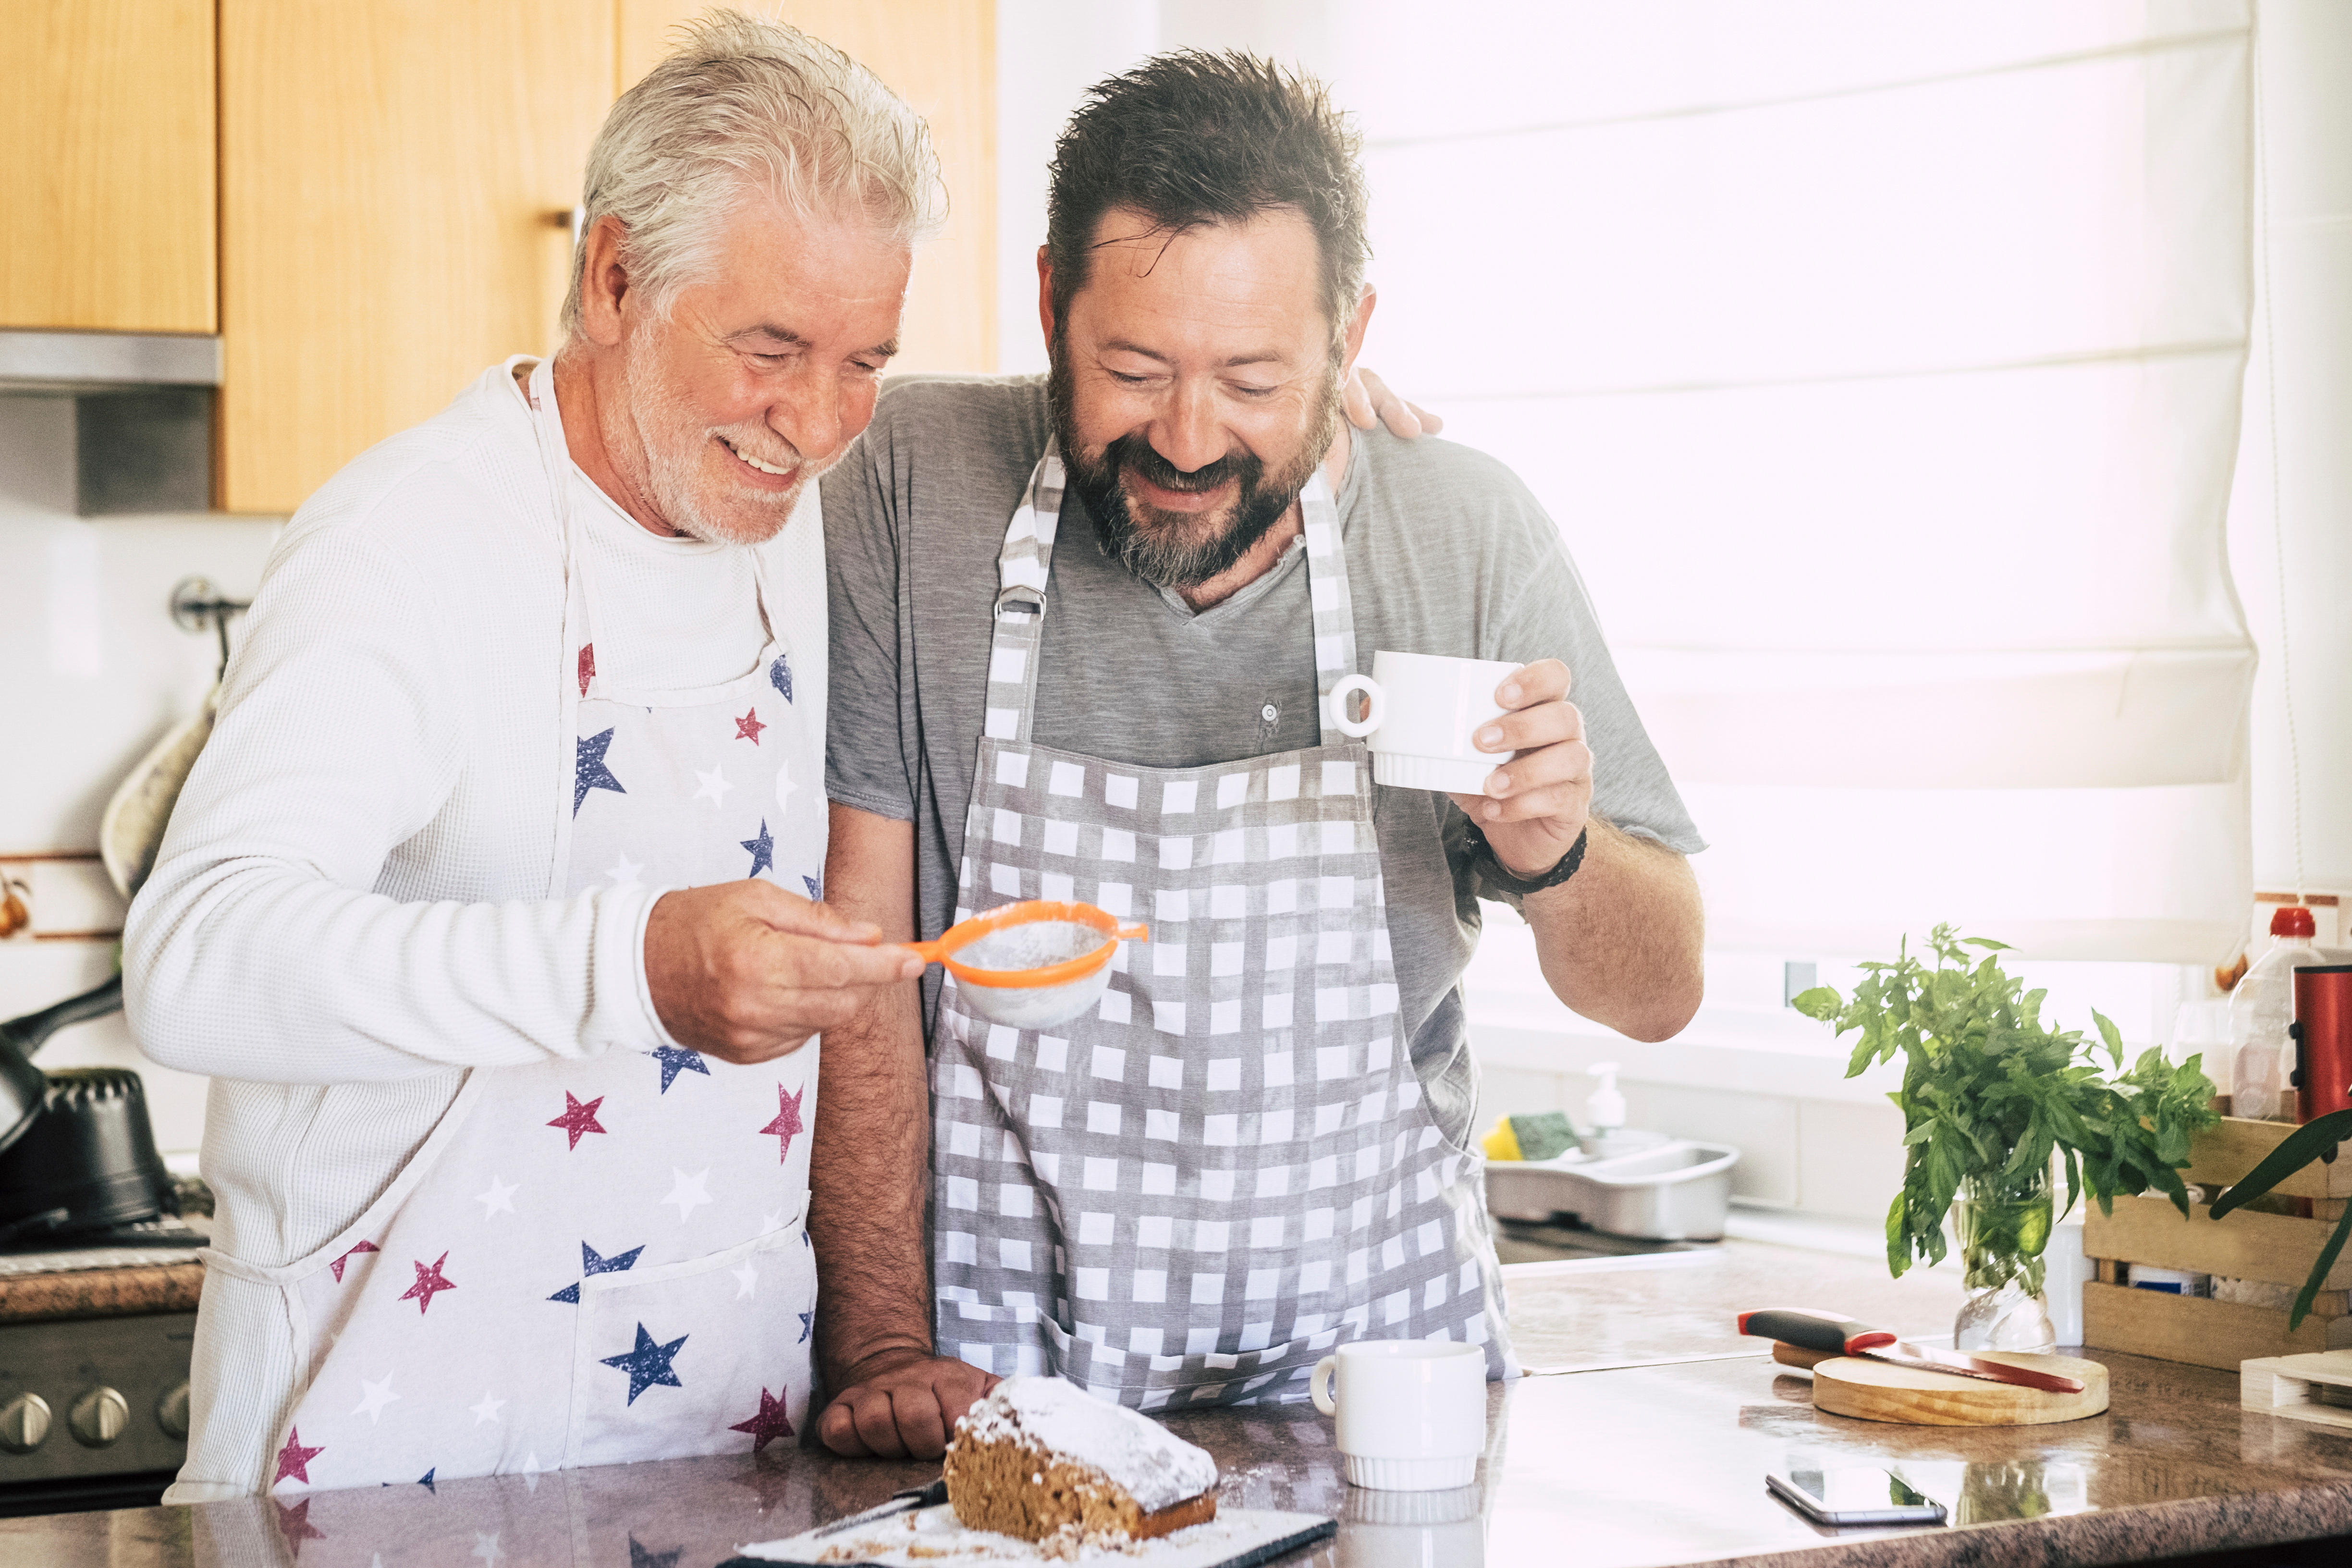 Dad and son baking